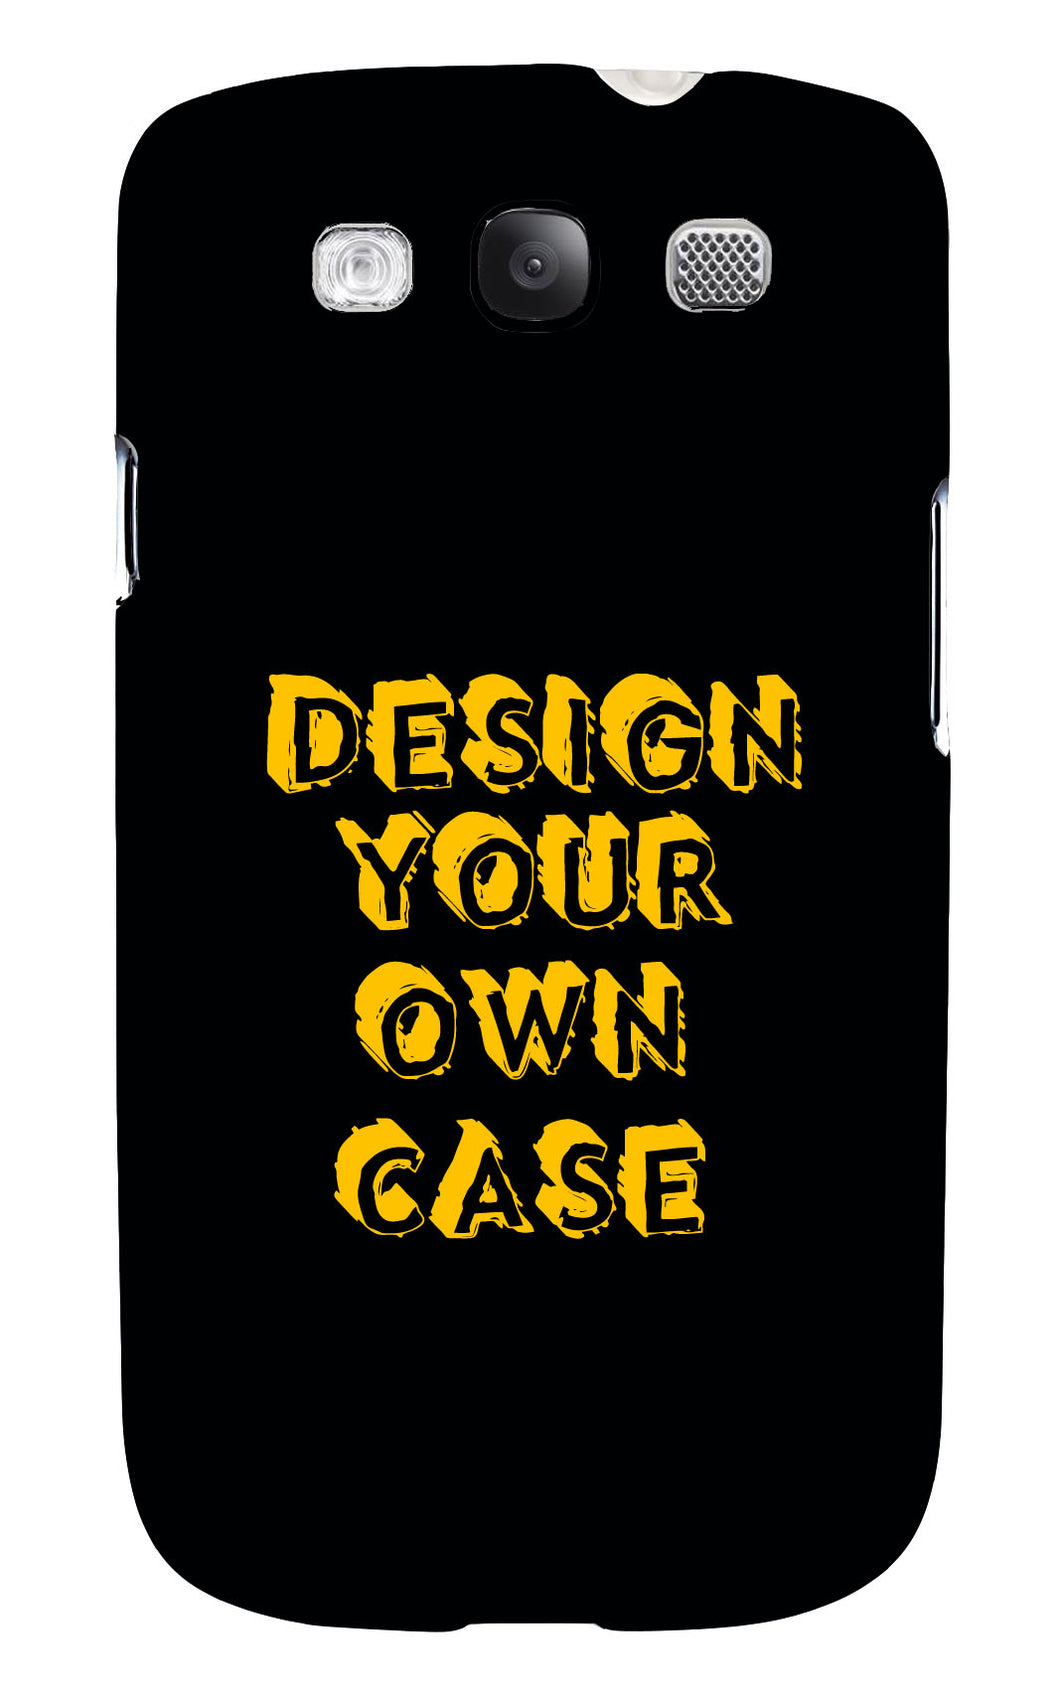 Design Your Own Case for Samsung Galaxy S3